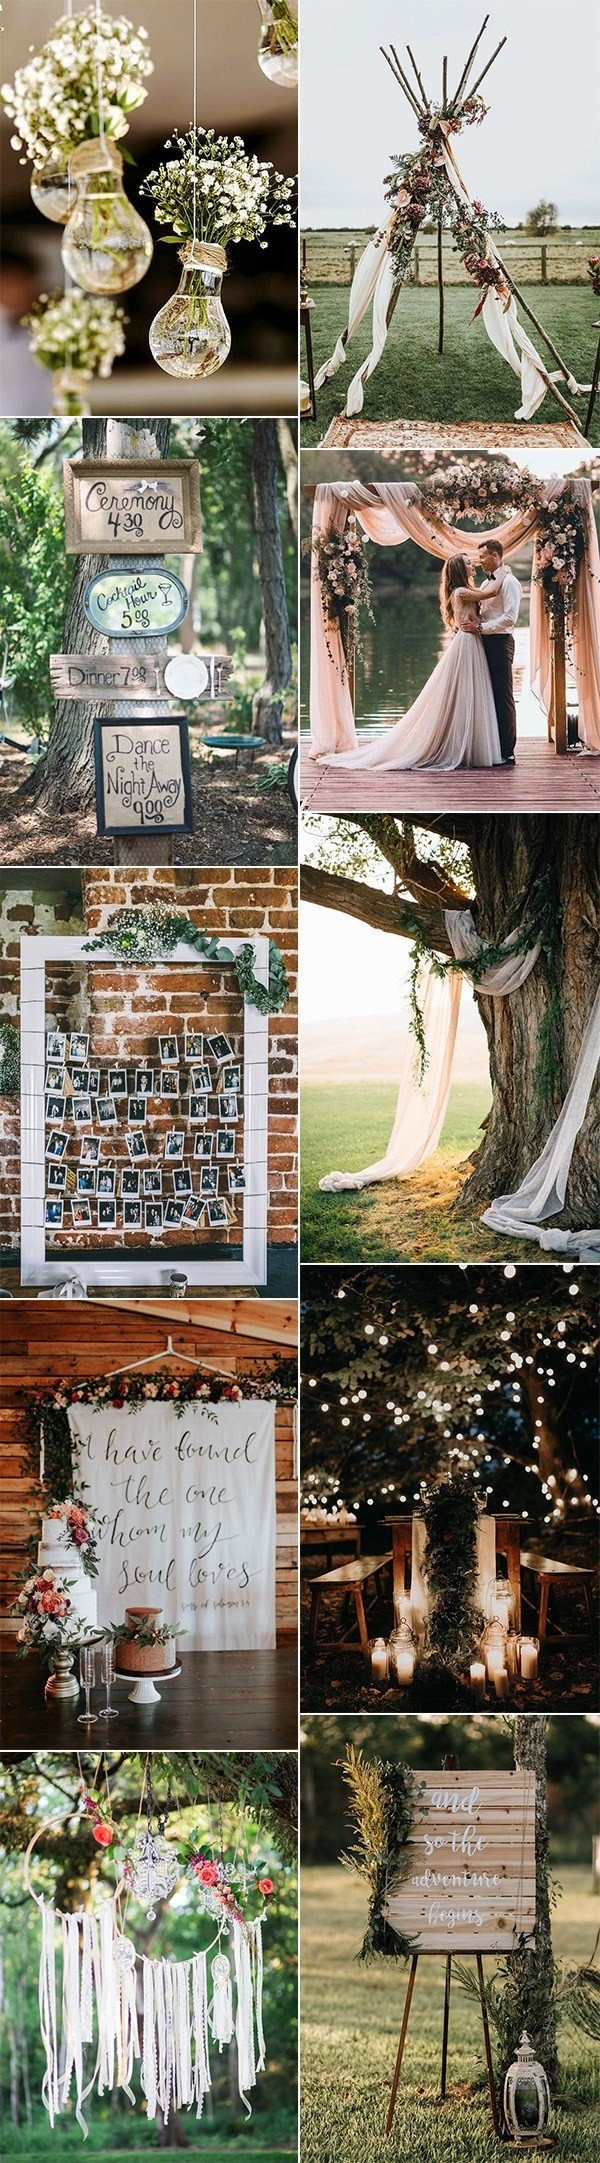 Trending 30 Boho Chic Wedding Ideas For 2018 Page 3 Of 3